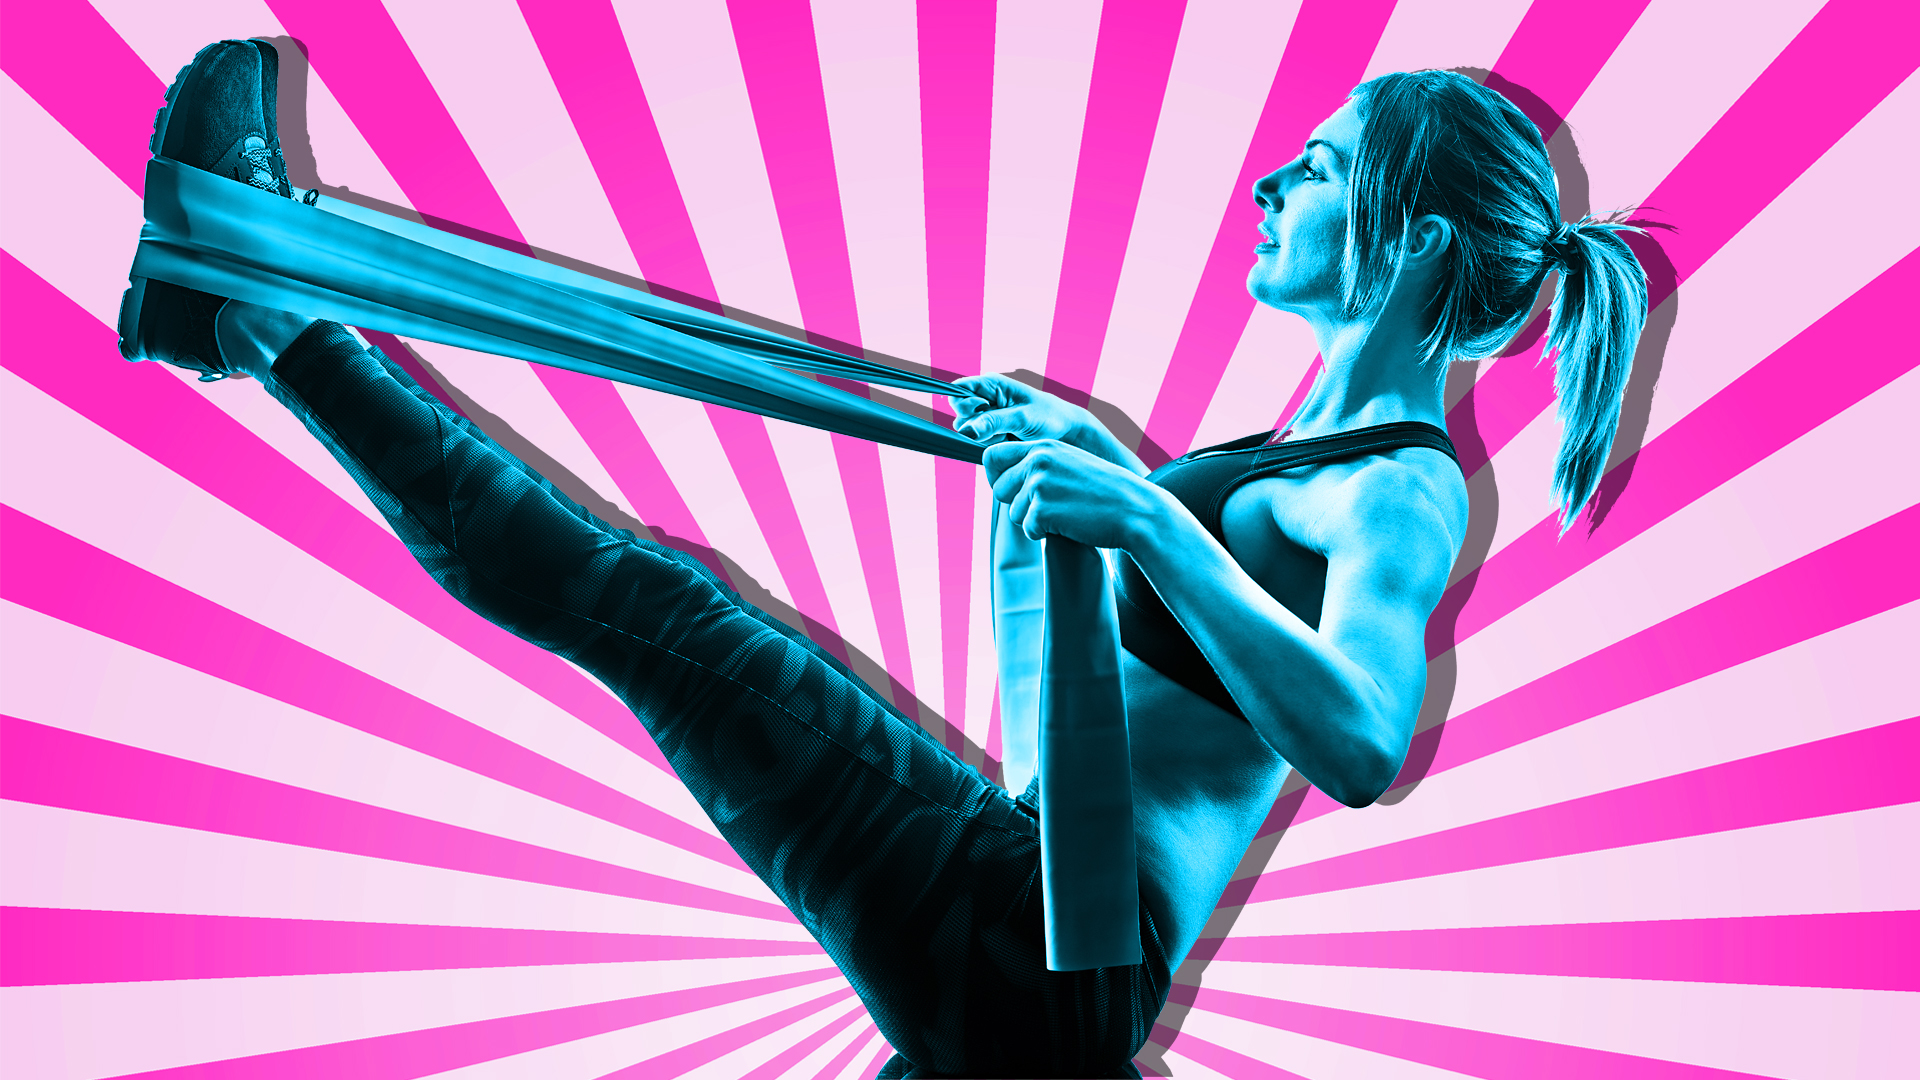 15 Exercises Anyone Can Do at Home With Resistance Bands